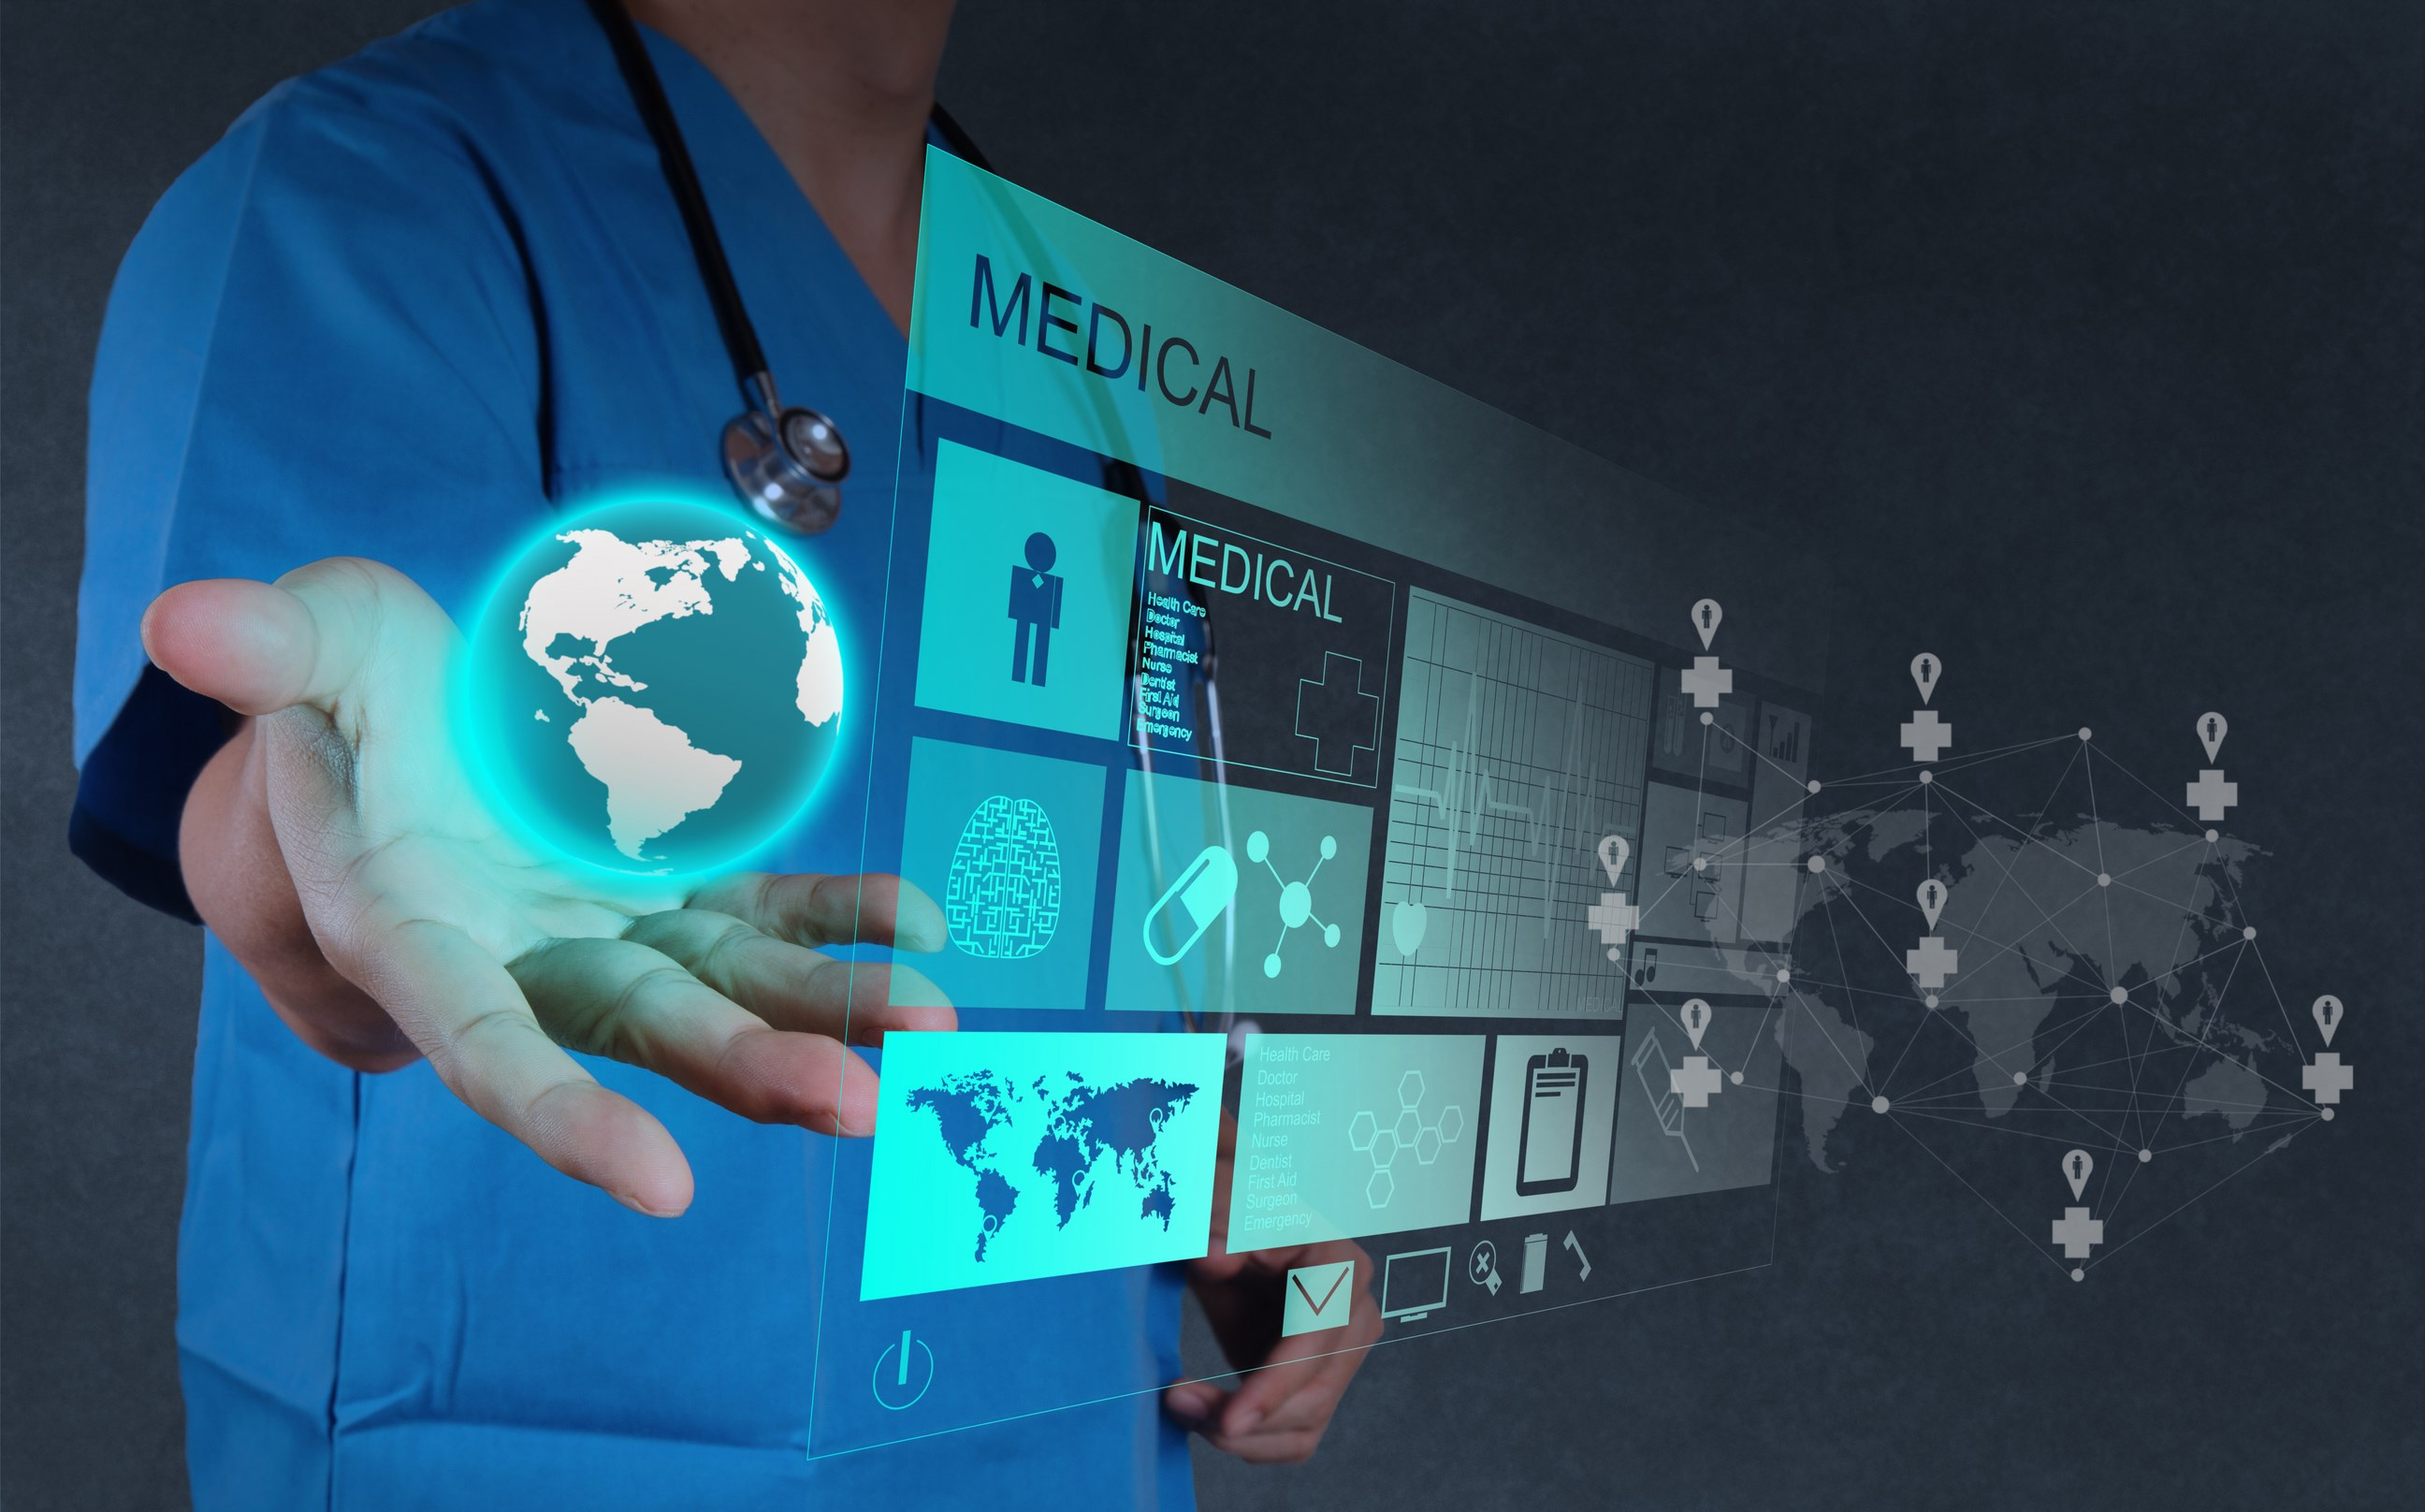 How to Expats Can Receive Medical Care in Barcelona